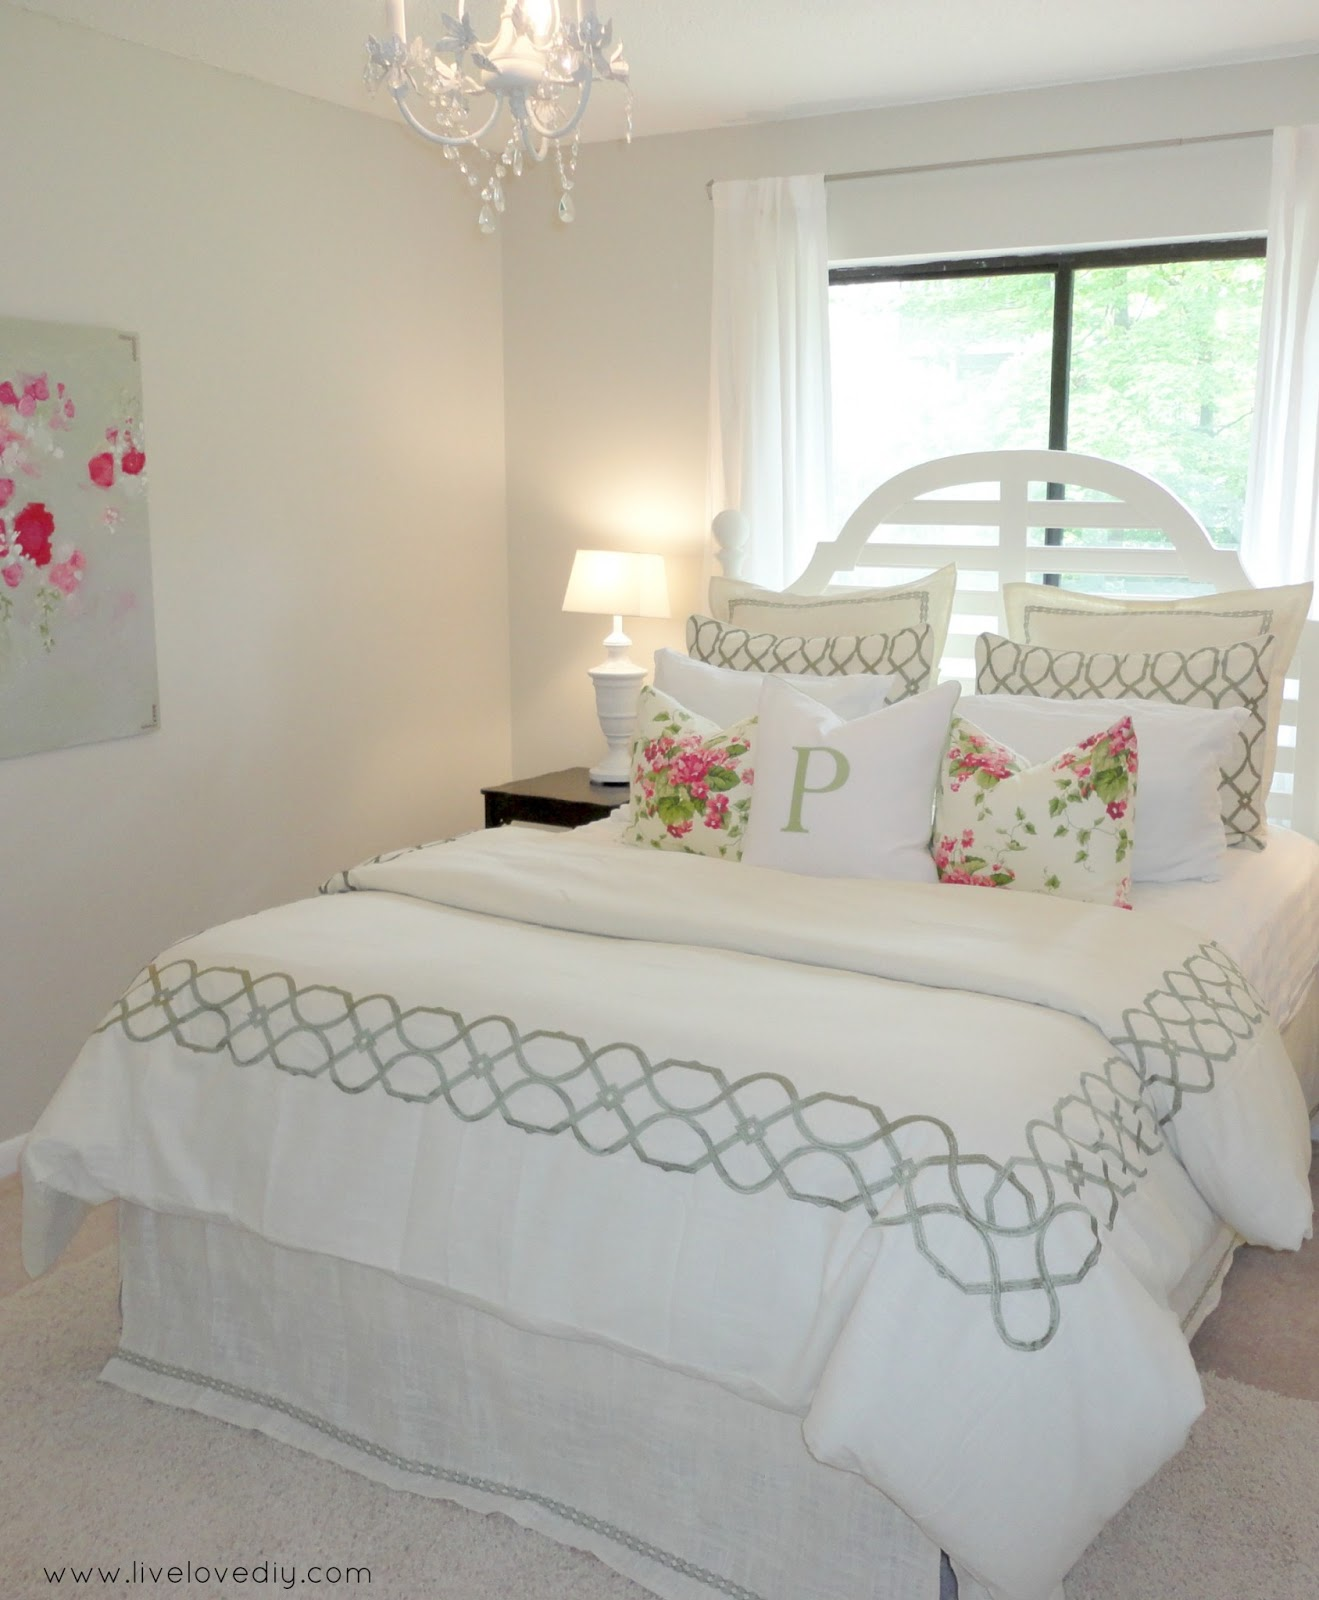 LiveLoveDIY: Decorating Bedrooms With Secondhand Finds: The Guest Bedroom  Reveal